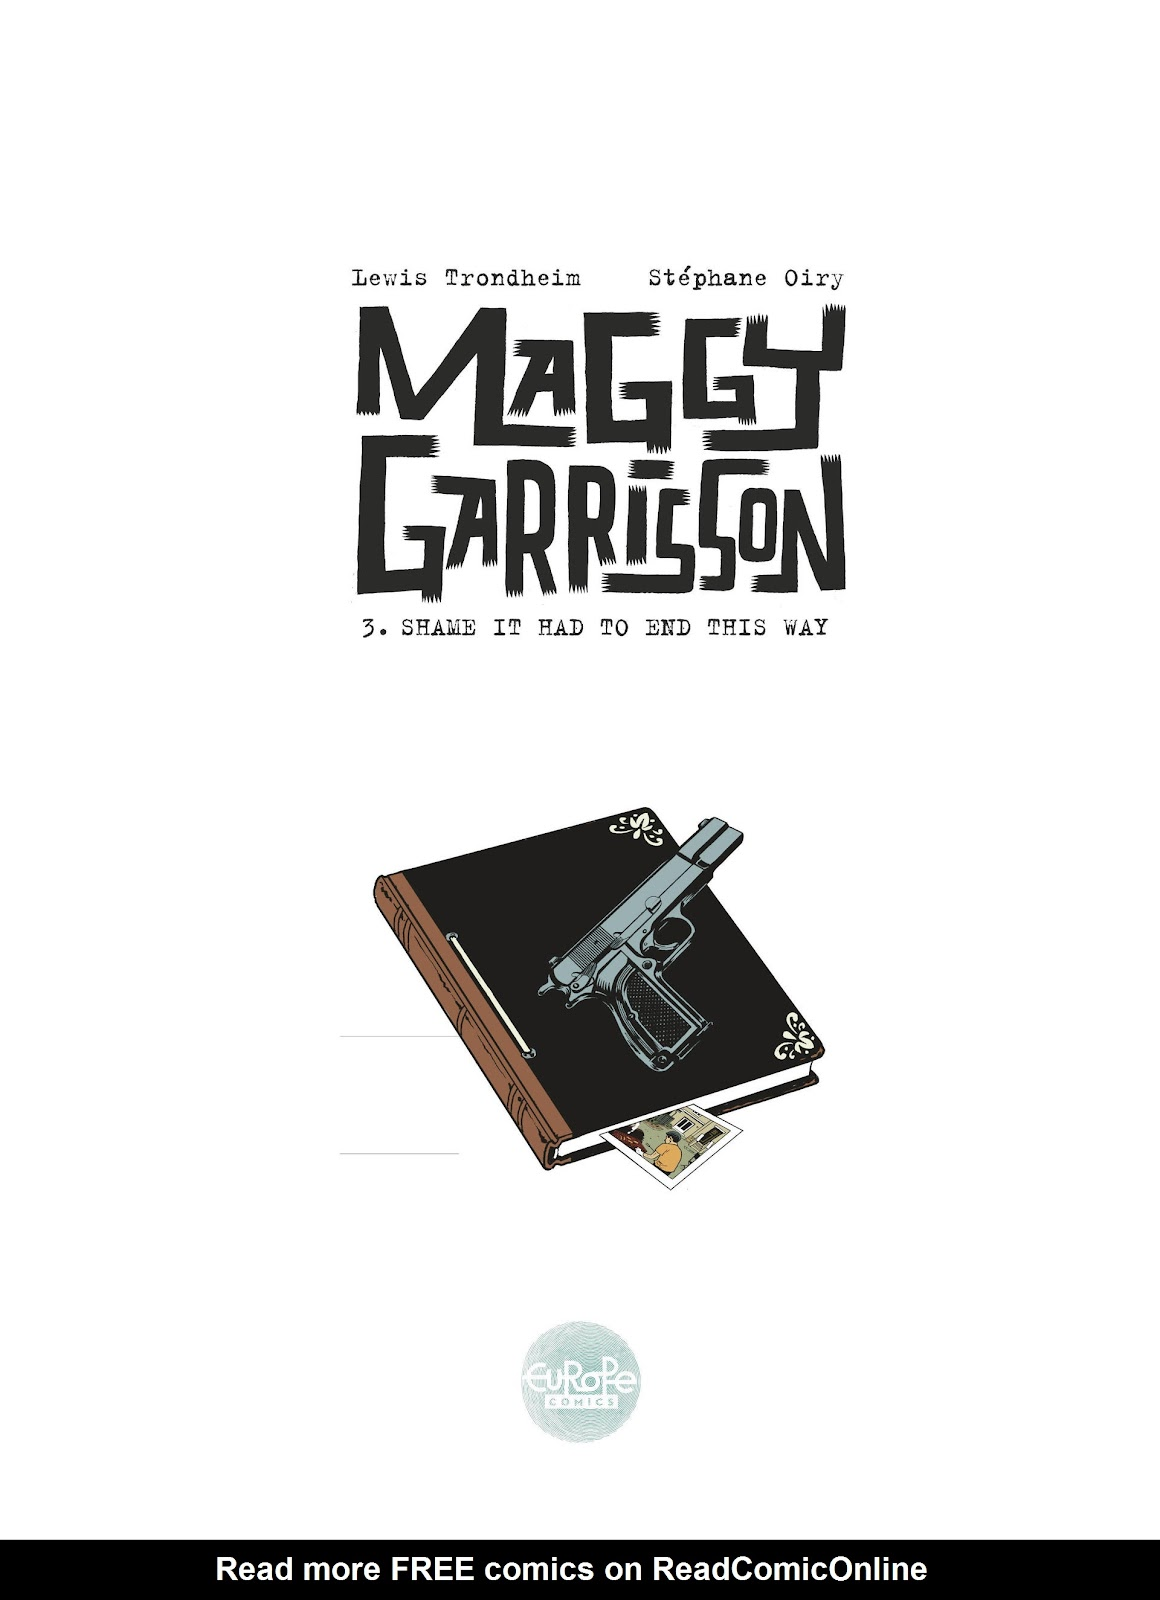 Read online Maggy Garrisson comic -  Issue #3 - 2